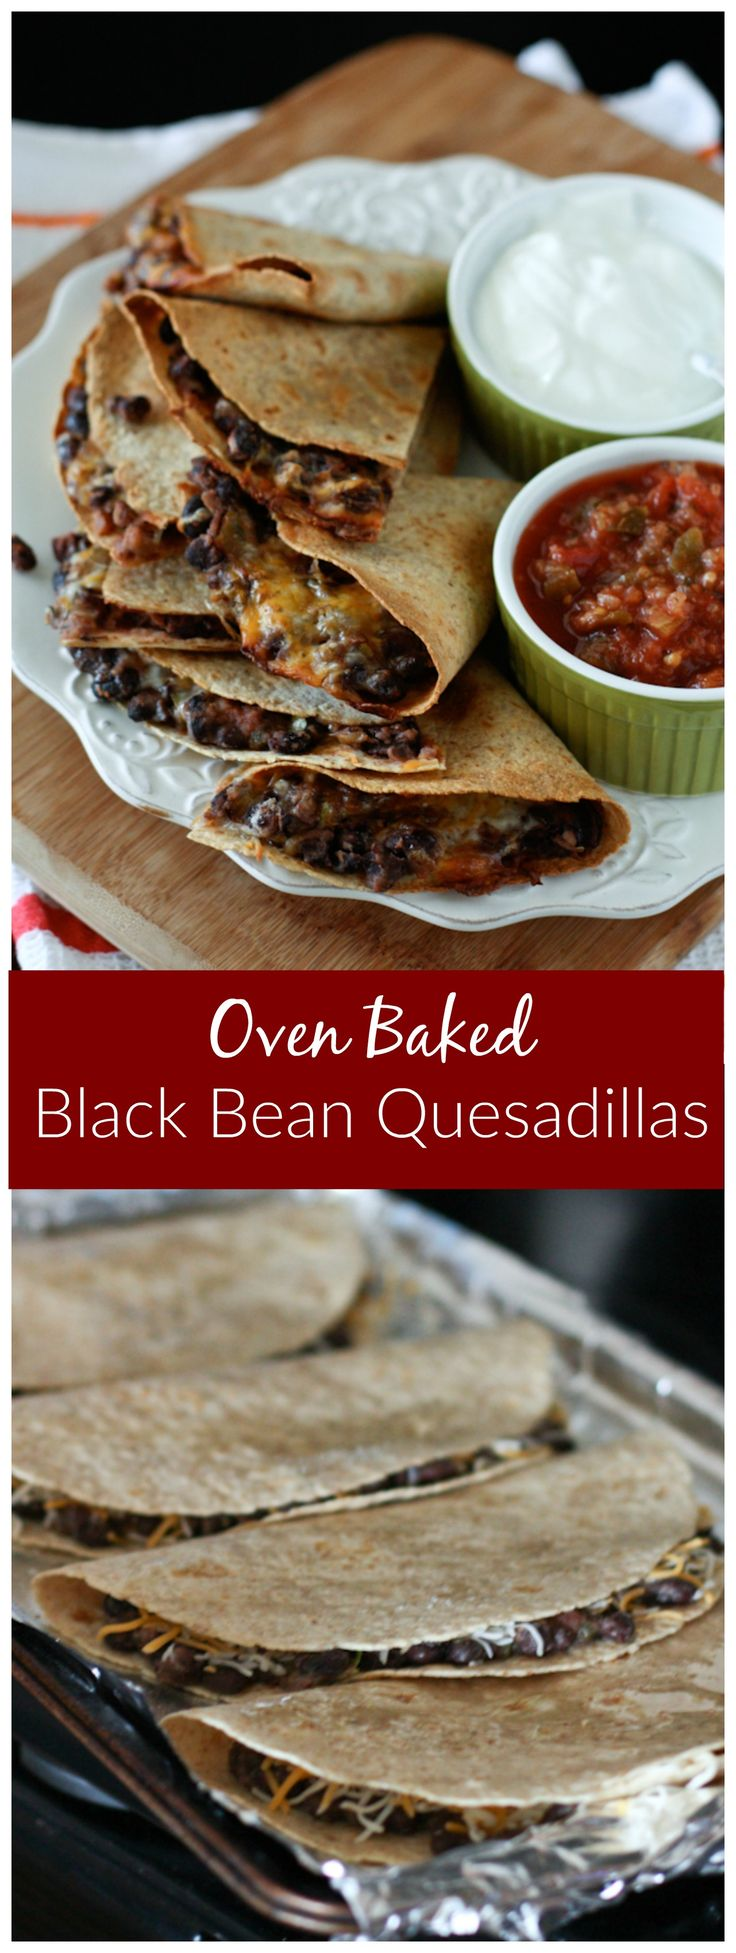 Oven baked Black Bean and Cheese Quesadillas make a great option for family dinner on a busy night, or when you need to cook for a crowd!